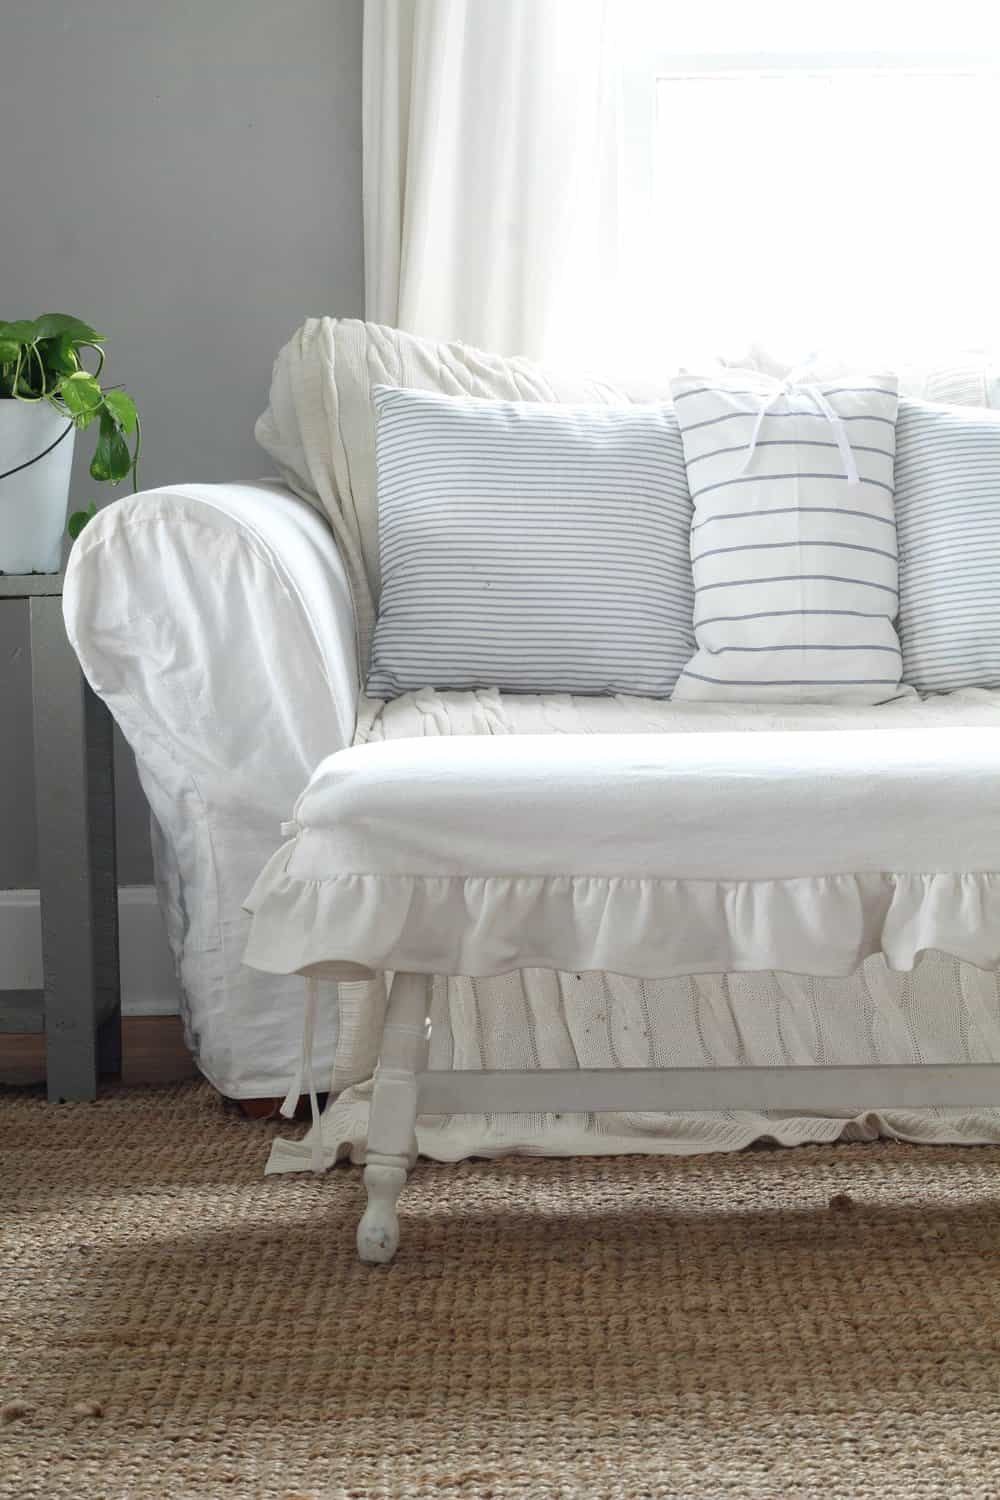 i wrote about my drop cloth bench makeover in this post i found it for 20 on a buy sell trade site